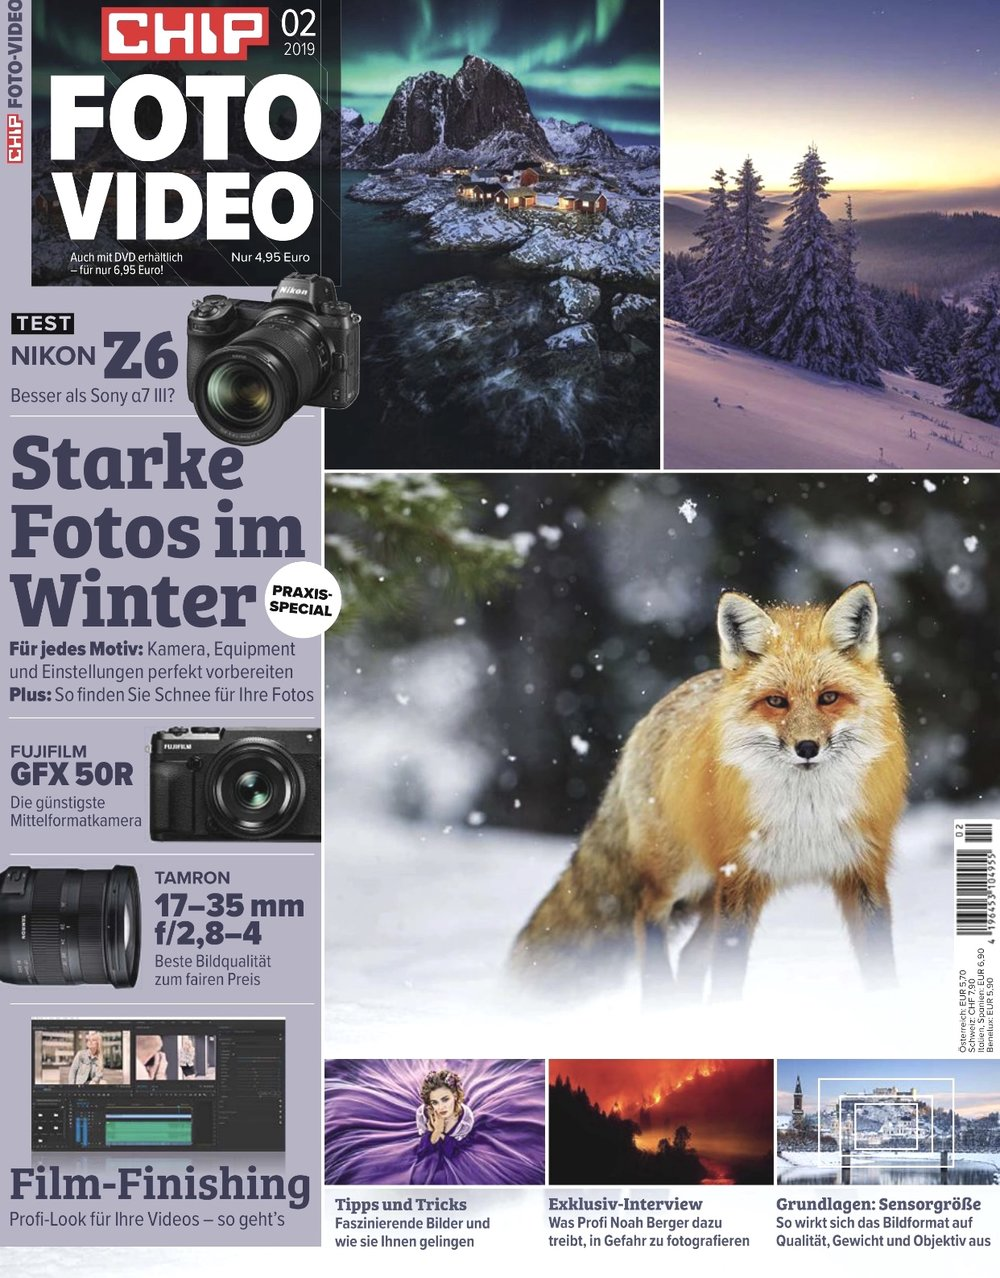 My Hamnøy image on the cover of Chip Foto Video (also includes a 2 page article written by me)